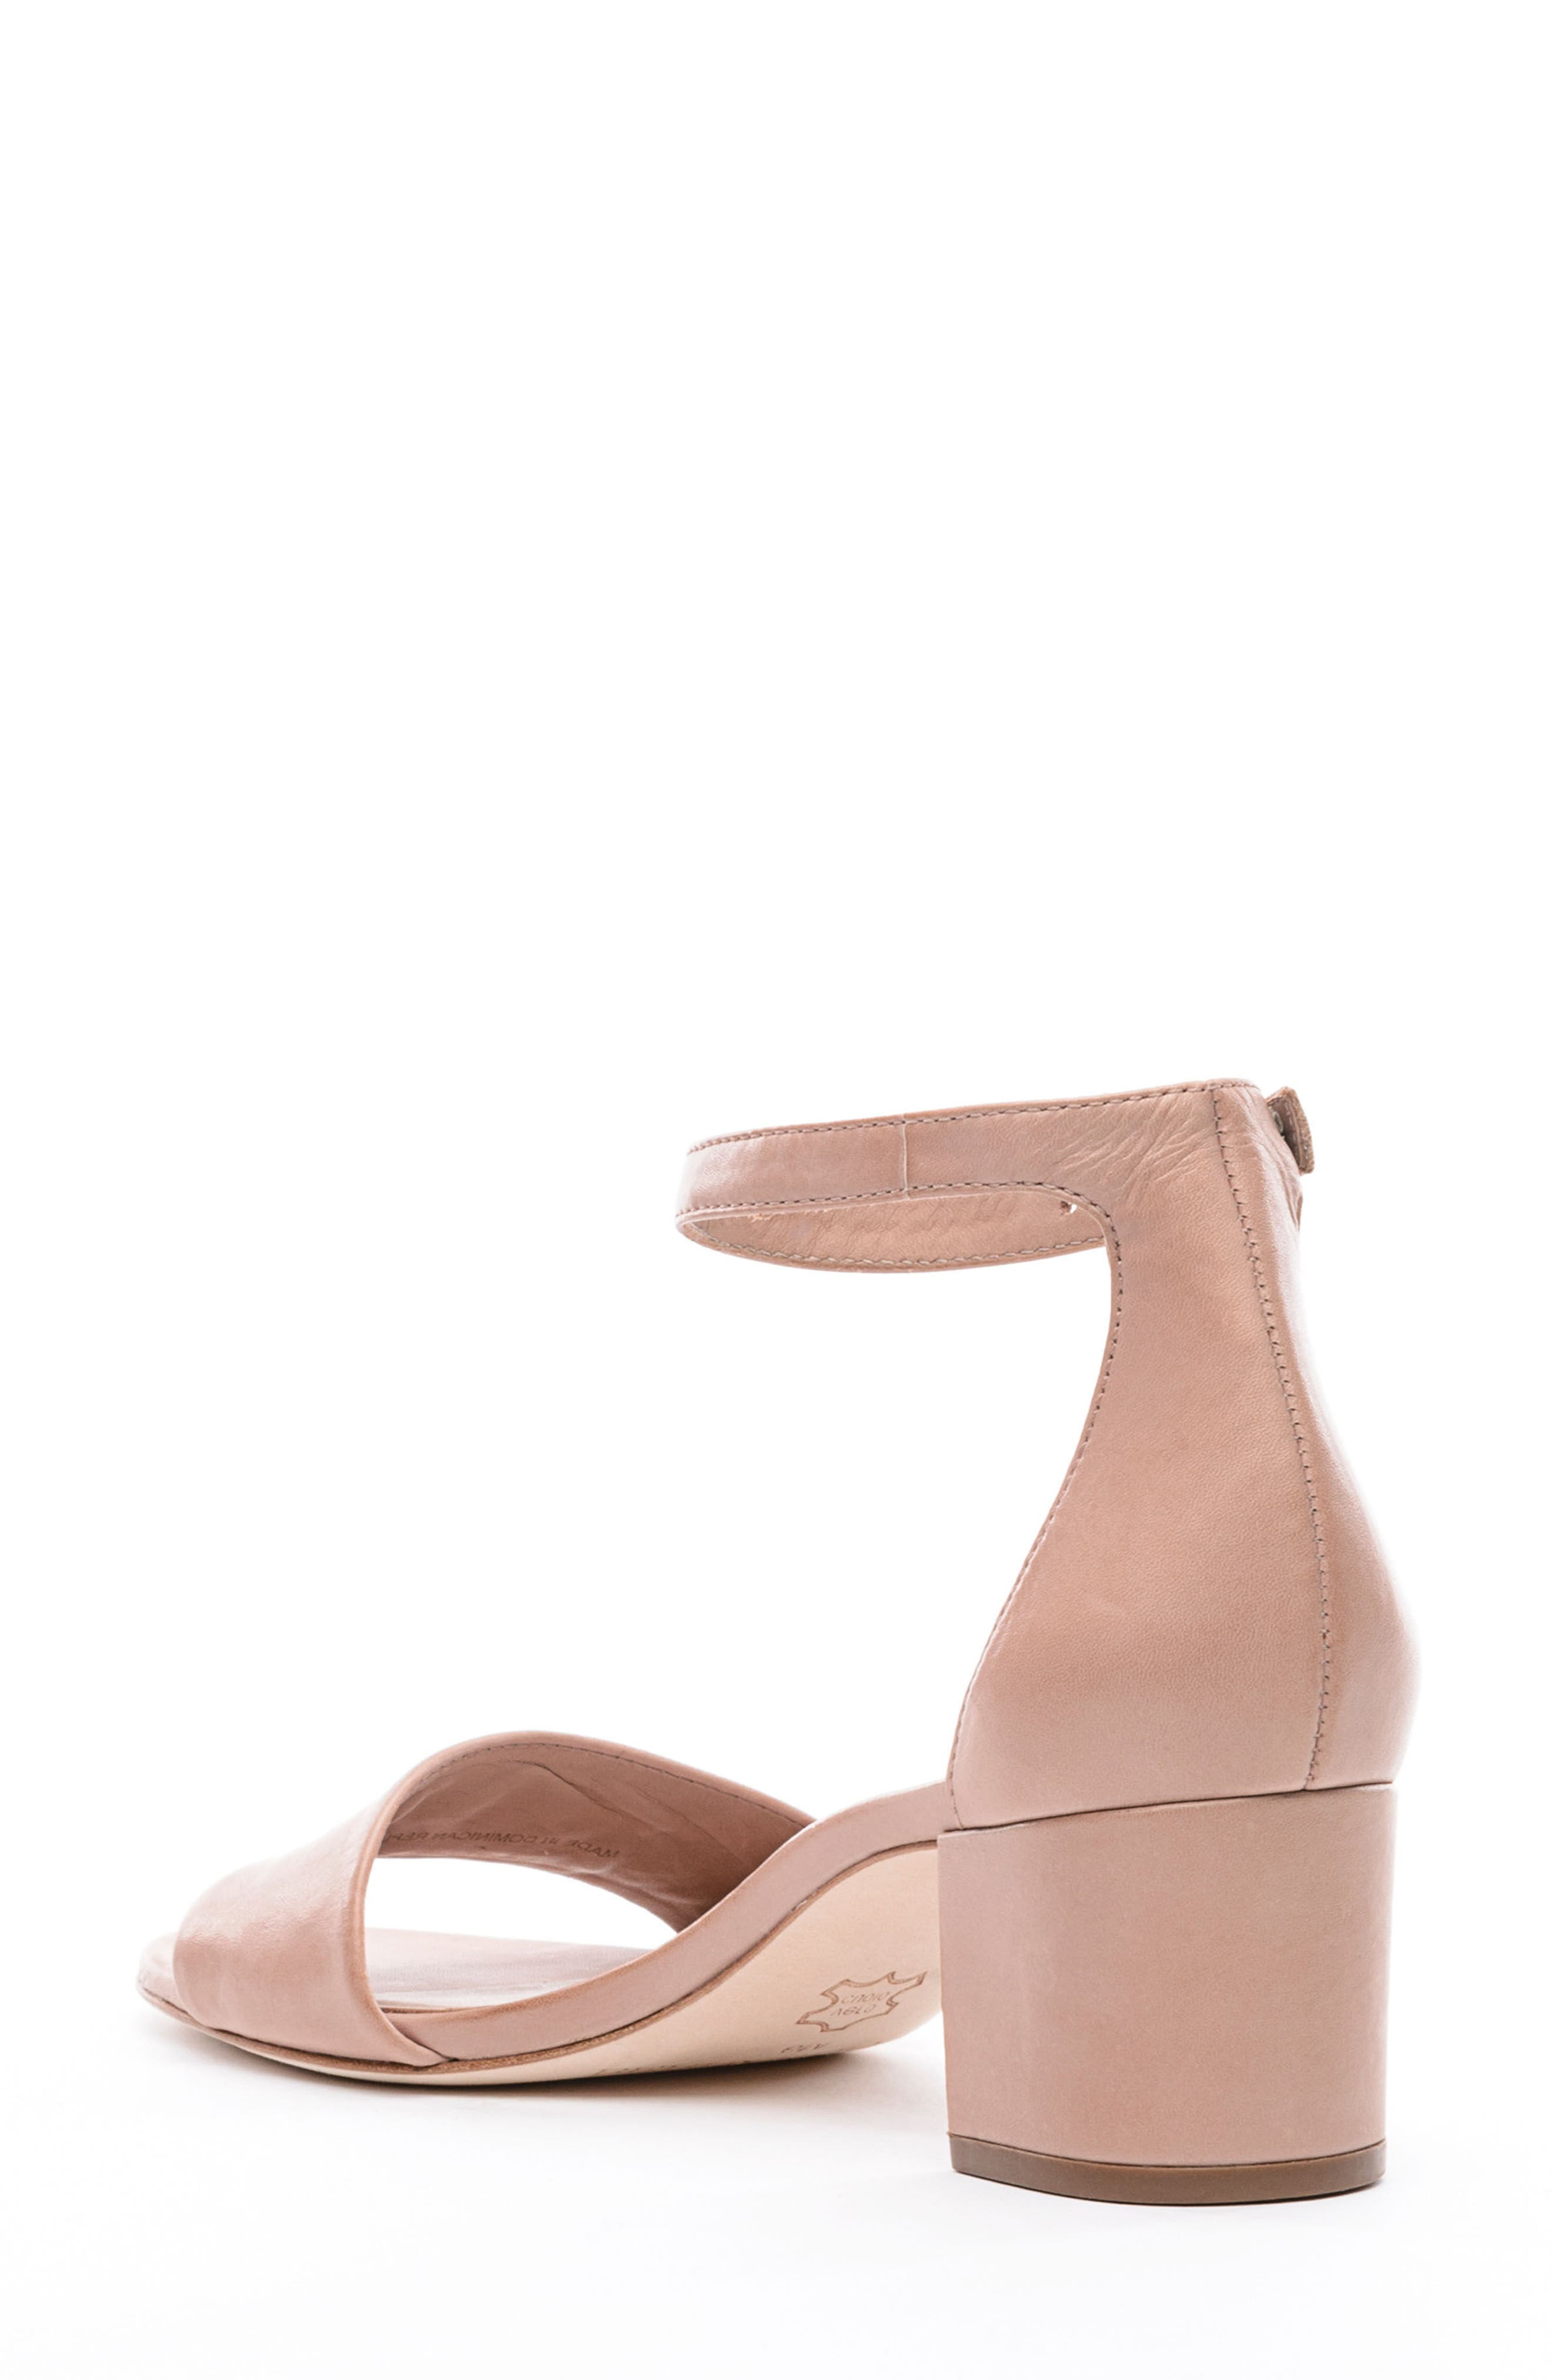 BERNARDO, Belinda Ankle Strap Sandal, Alternate thumbnail 2, color, BLUSH LEATHER